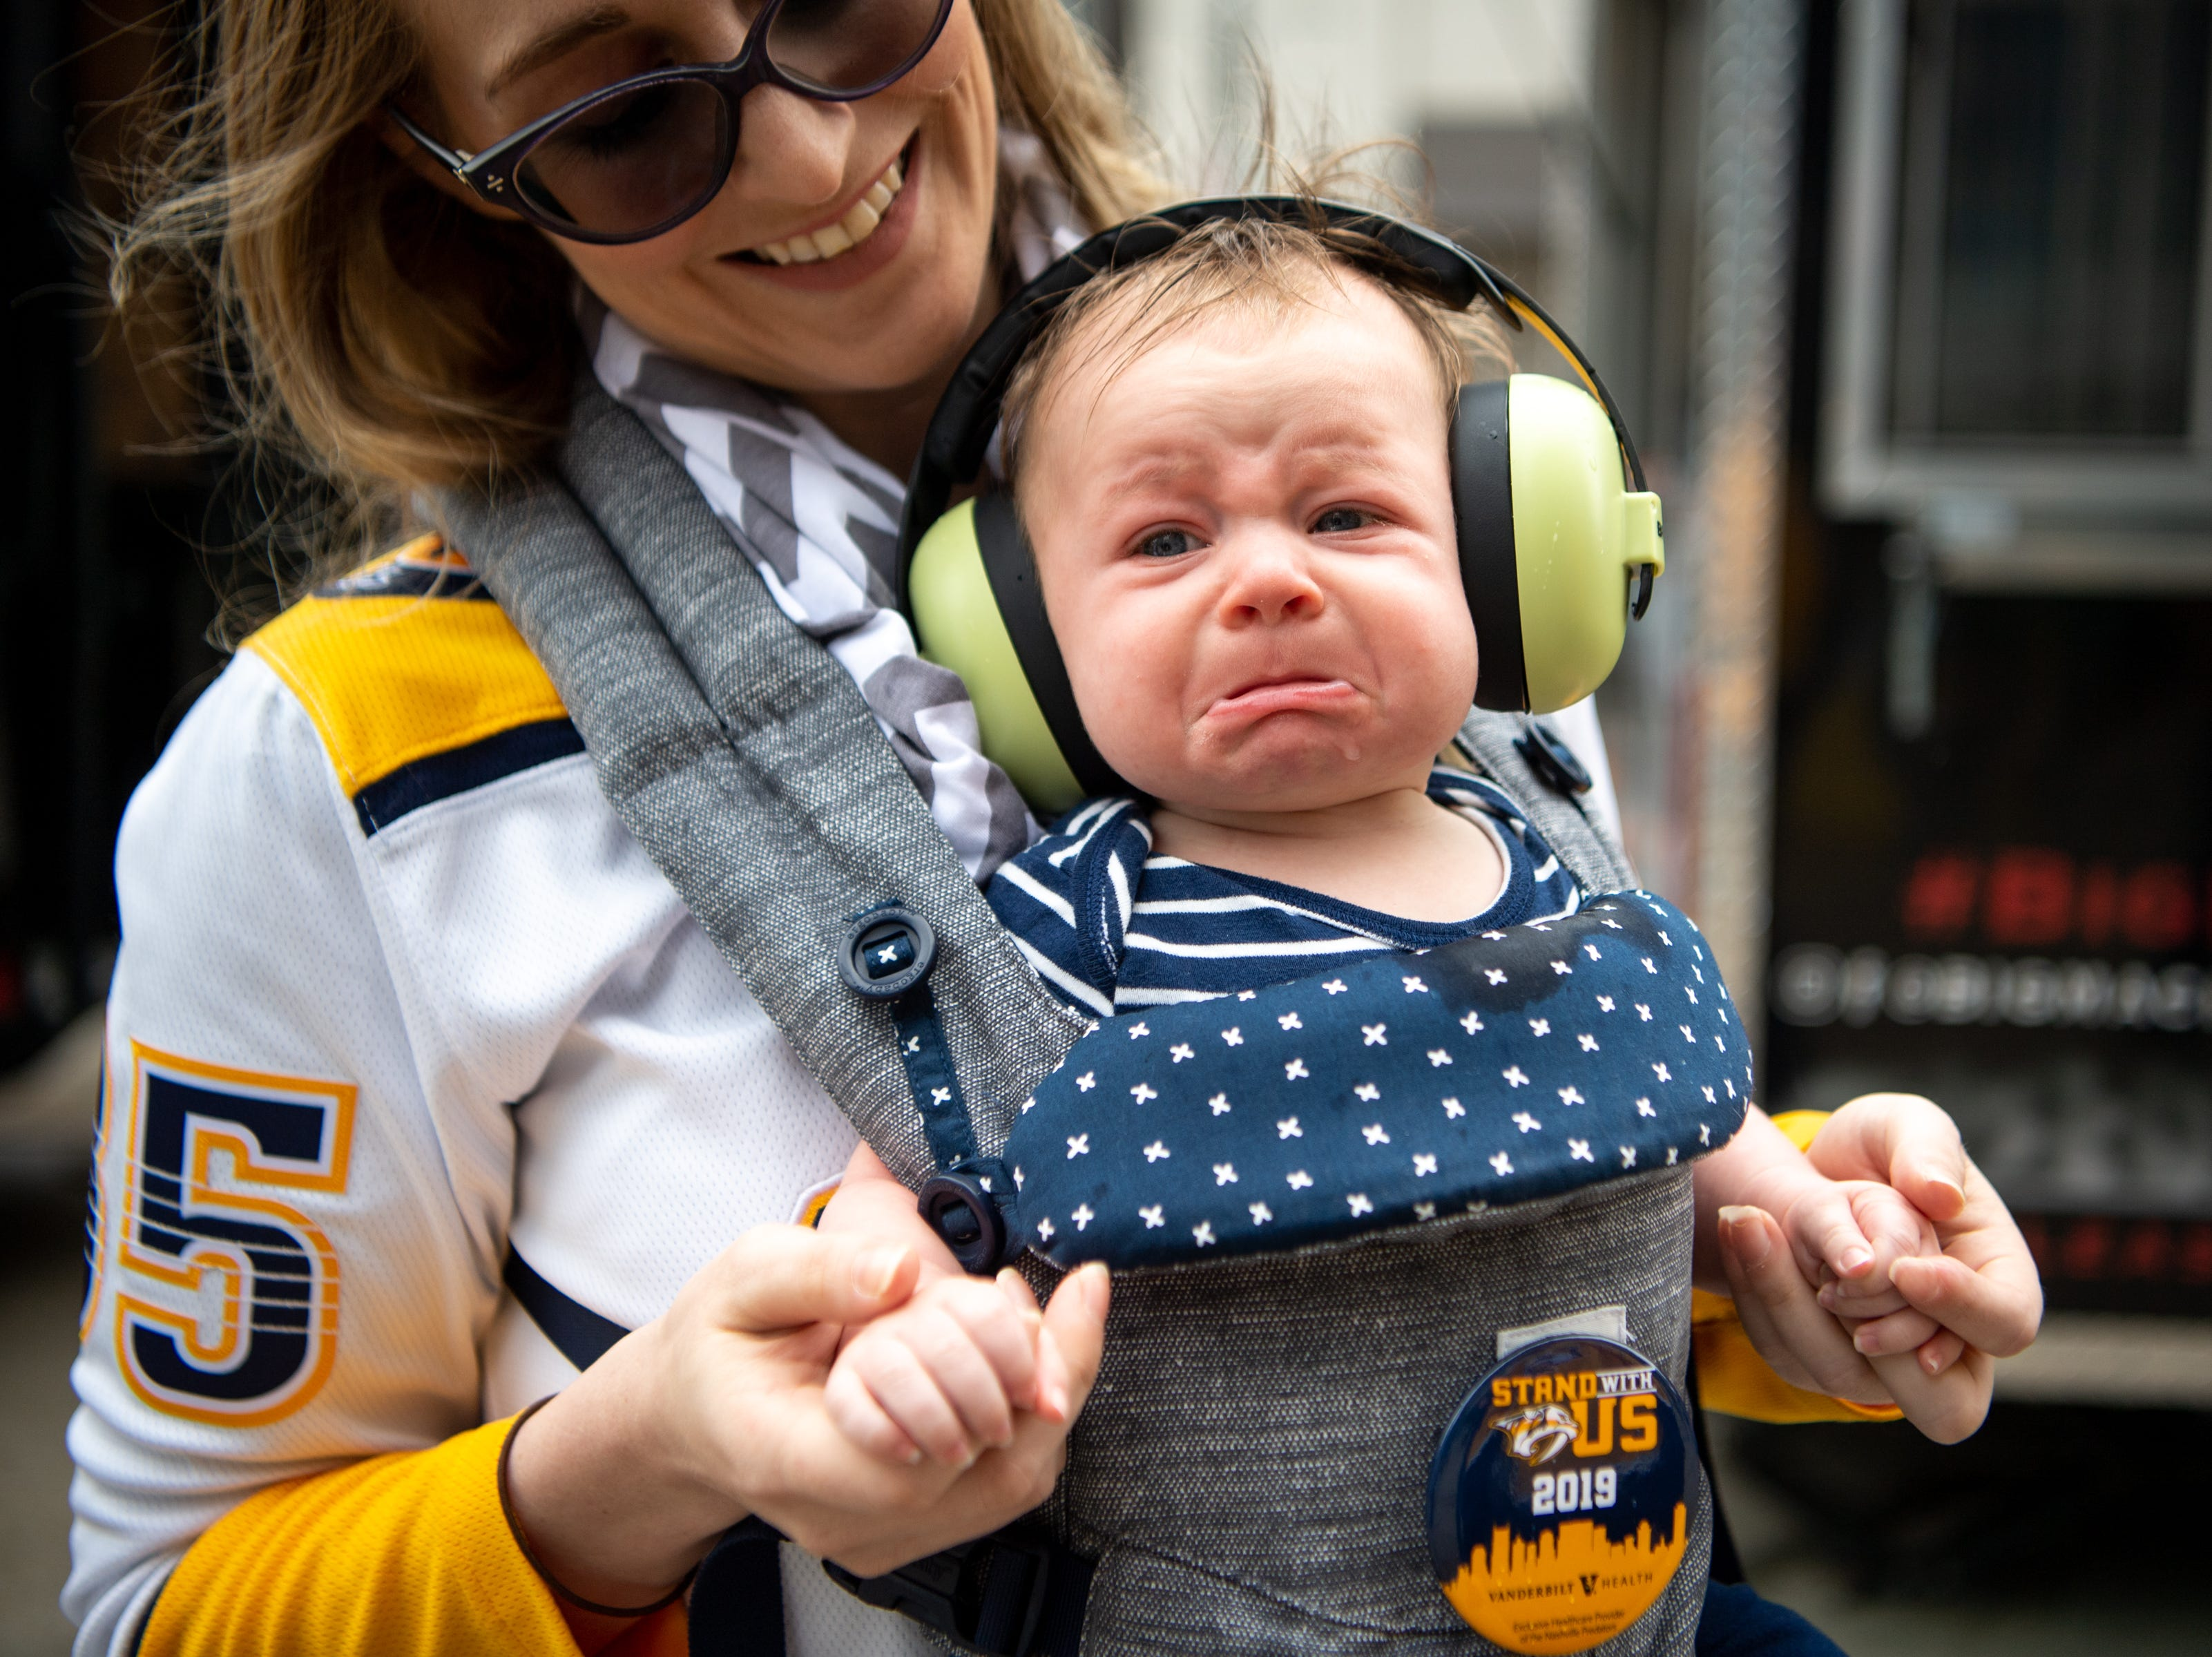 Arvid, 4 months, cries while being held by his mother Andrea Borg before the Nashville Predators game against the Dallas Stars at Bridgestone Arena Saturday, April 13, 2019, in Nashville, Tenn.